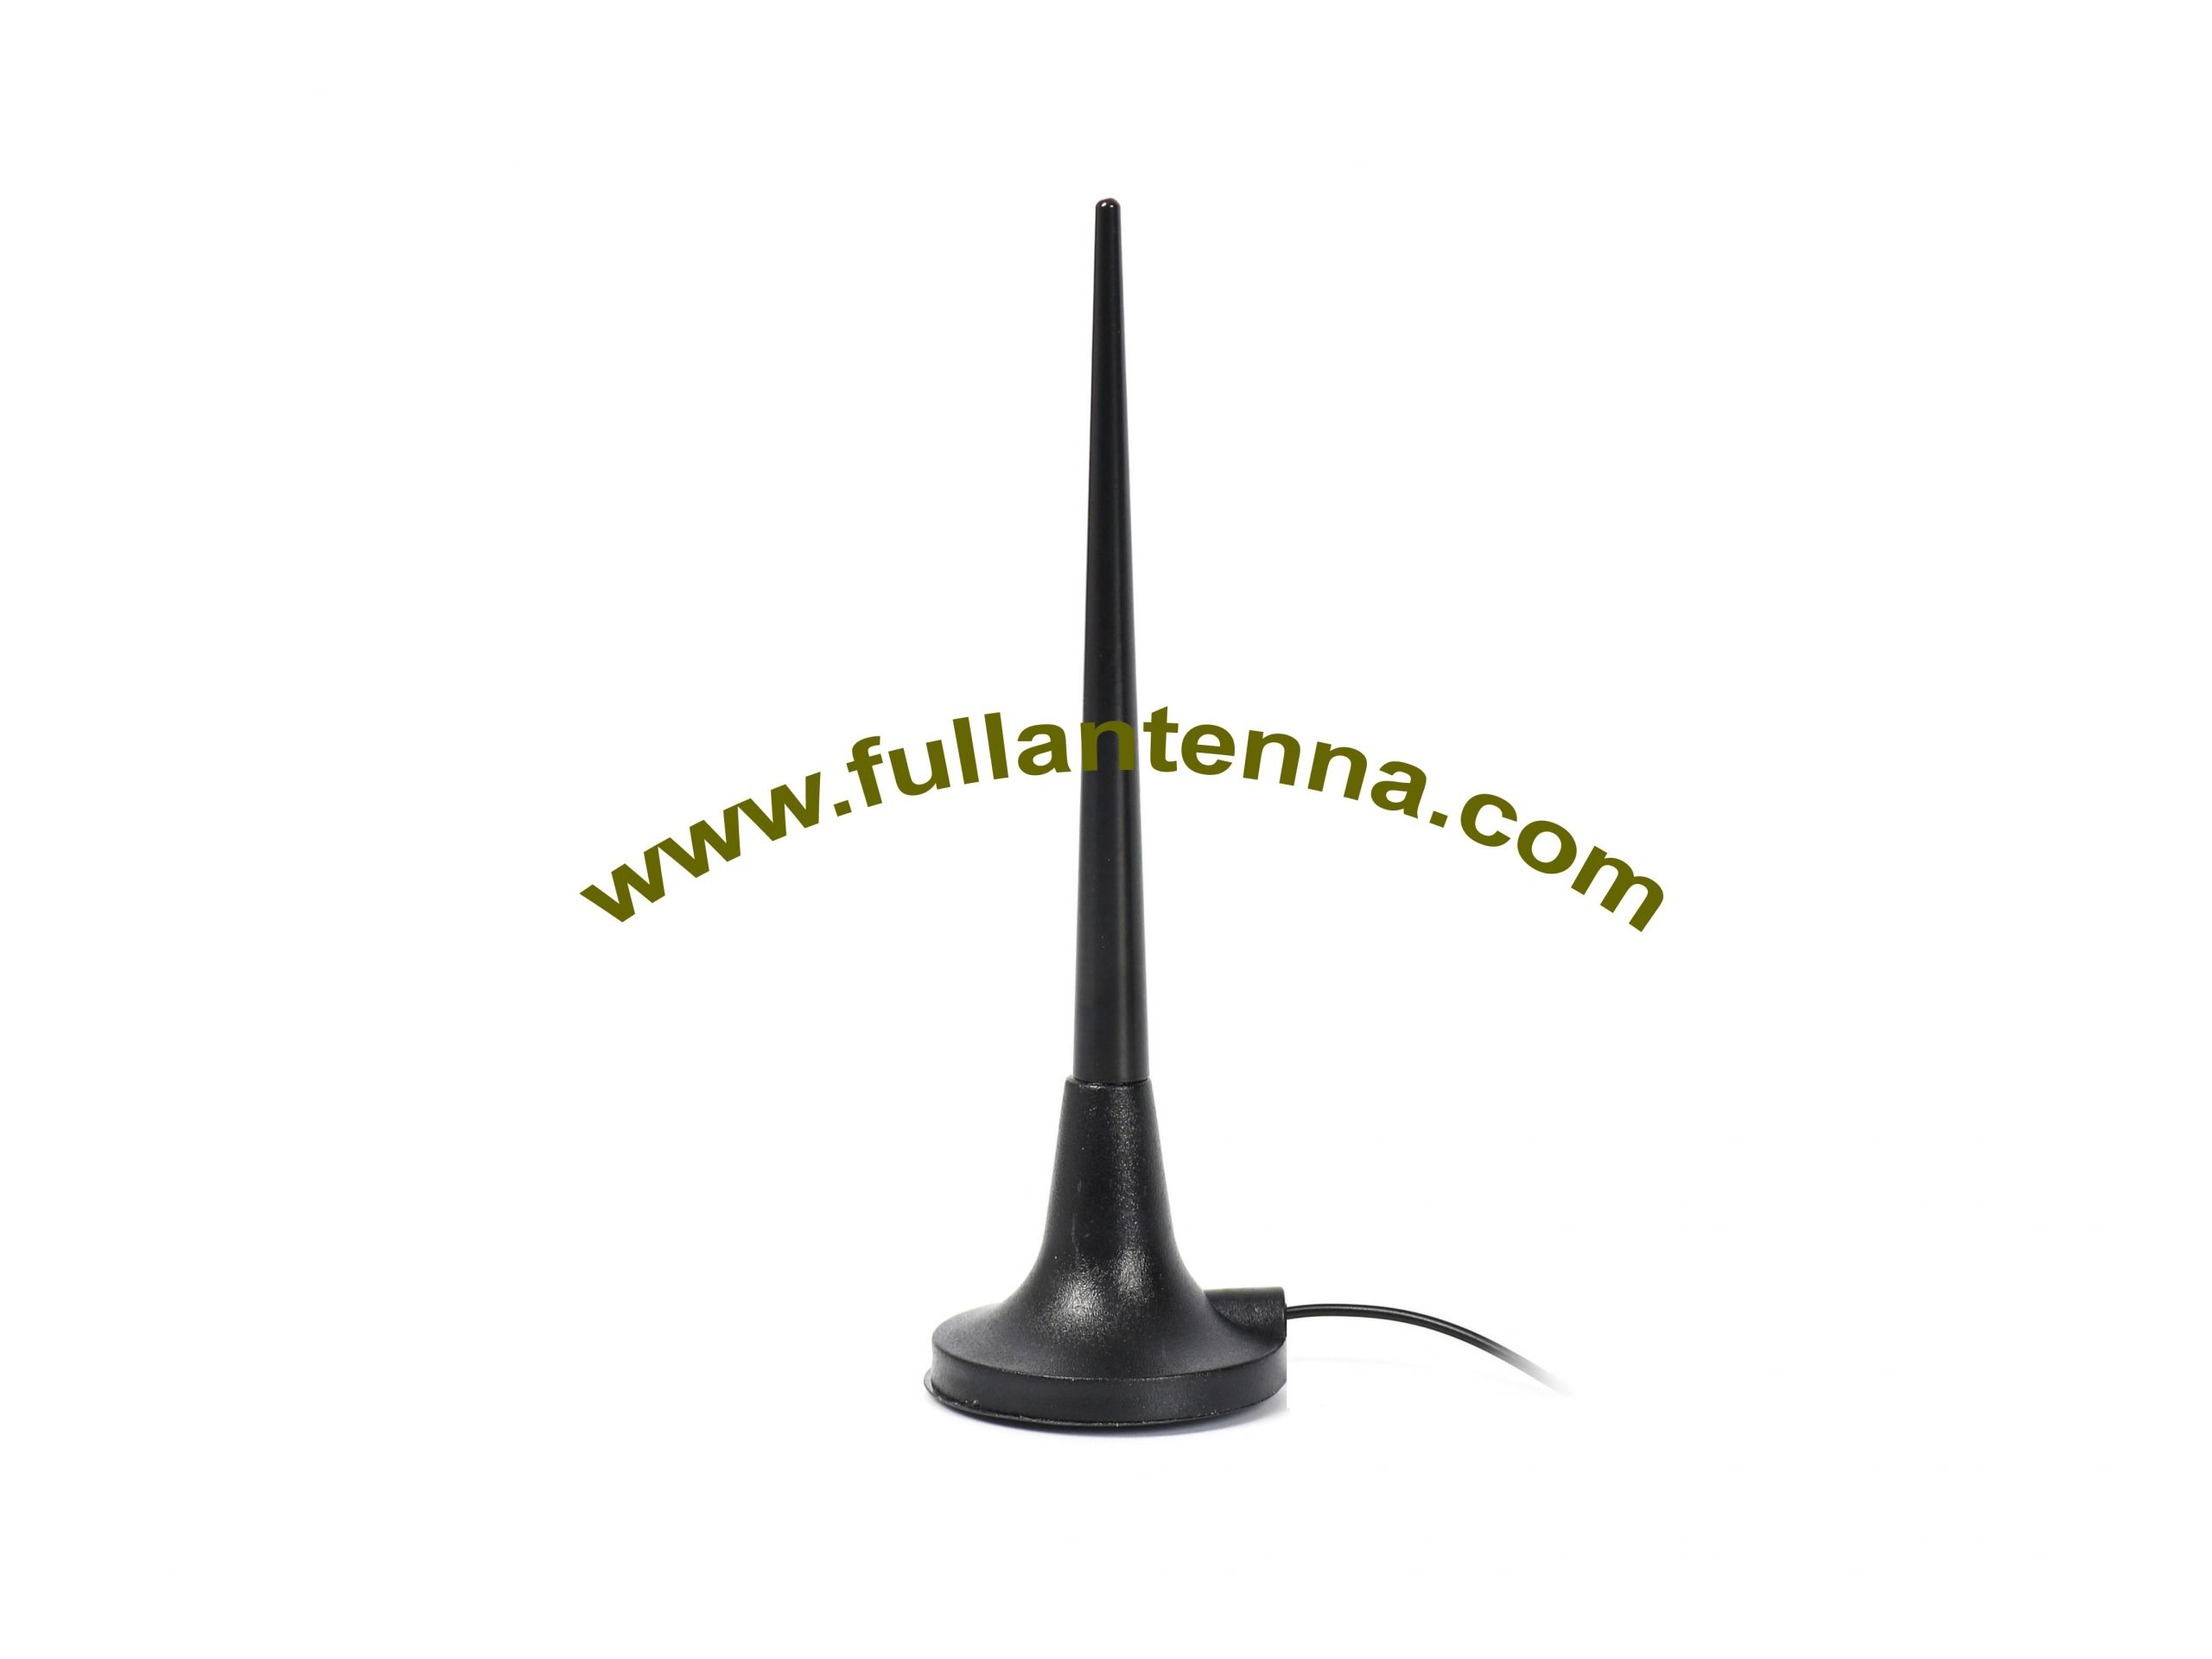 P/N:FA3G.12,3G External Antenna,outdoor  AERIAL with  magnetic mount   and metal whip